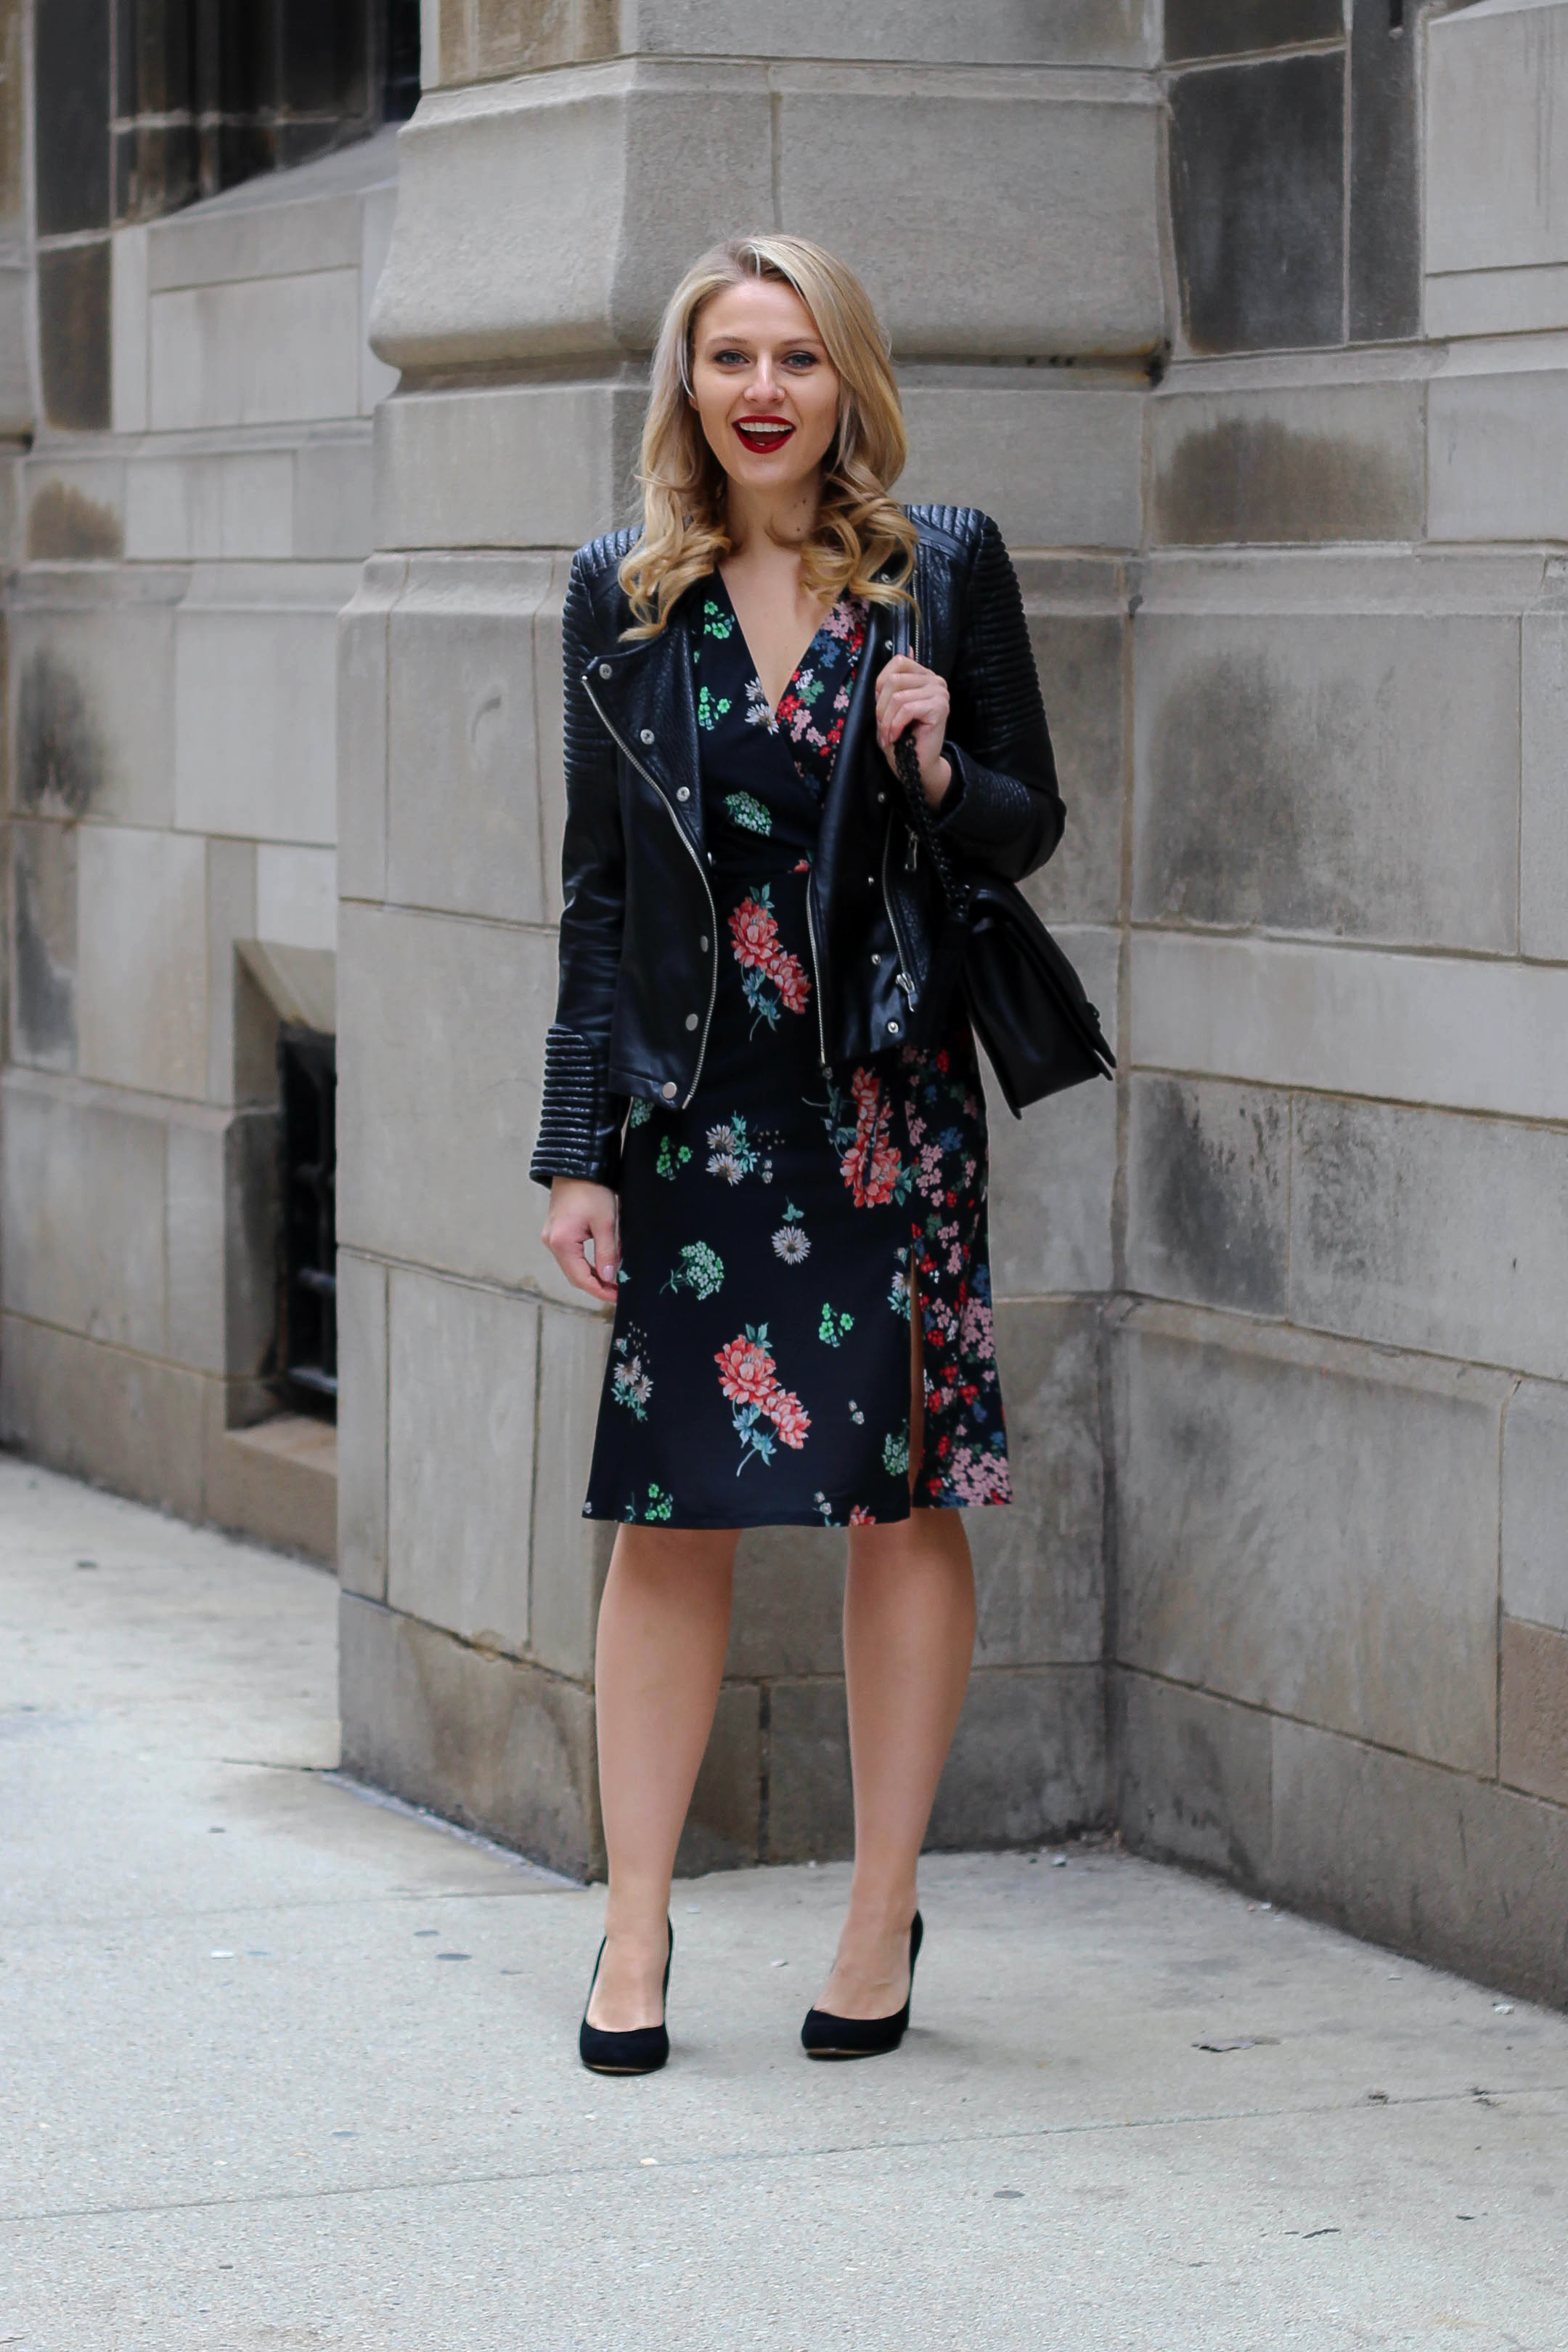 A faux leather biker jacket with an ASOS floral midi dress for a night out on the town